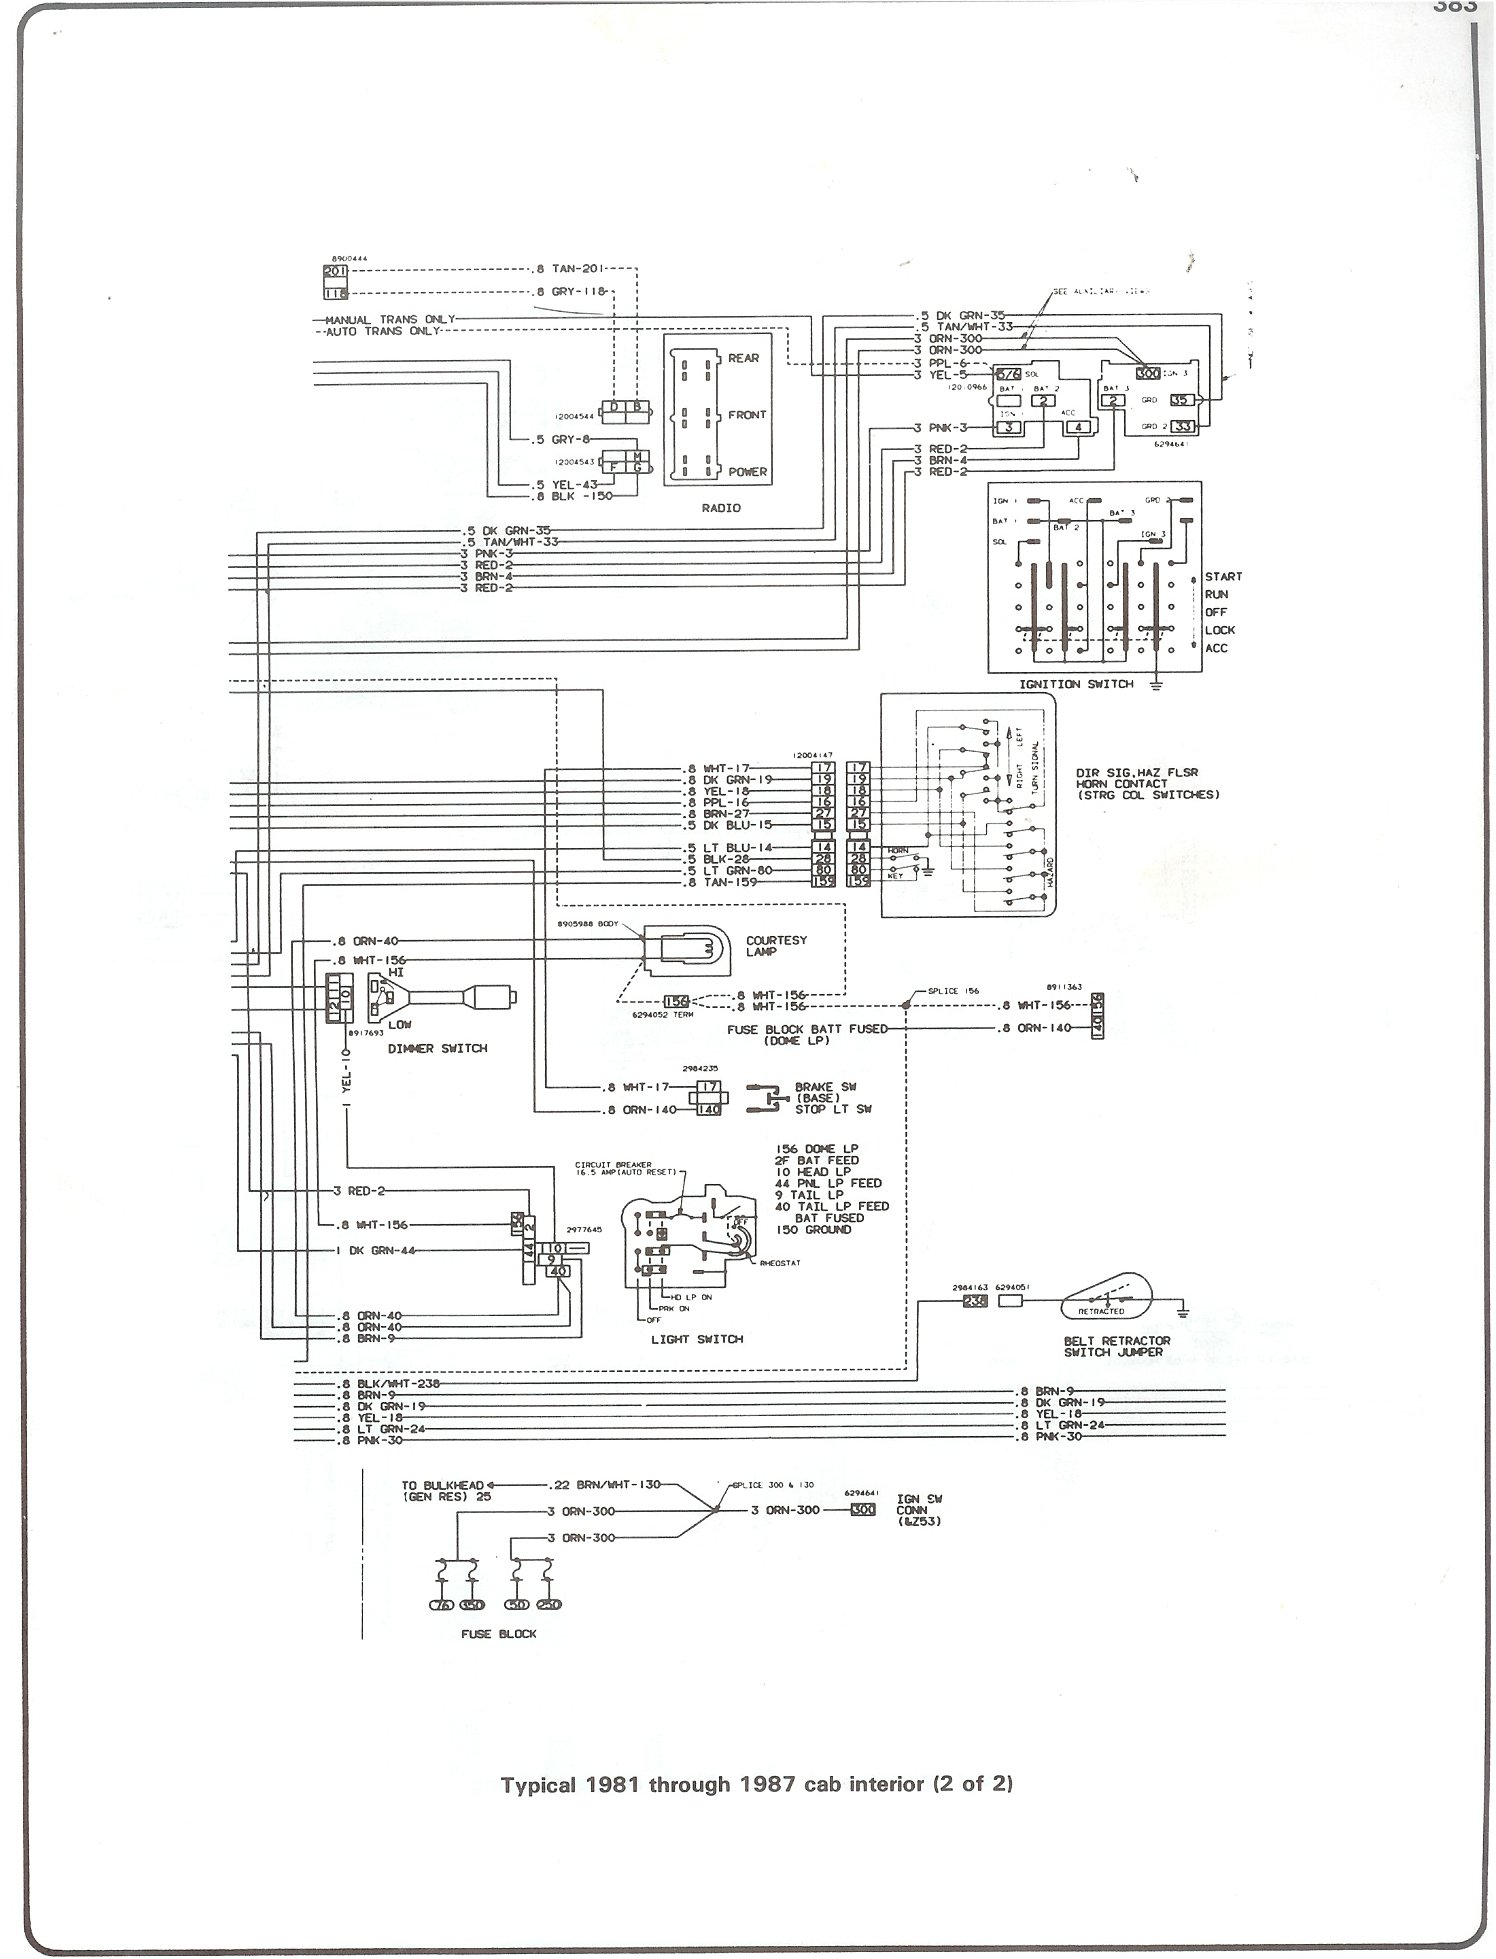 81 87_cab_inter_pg2 electrical diagrams chevy only page 2 truck forum  at arjmand.co